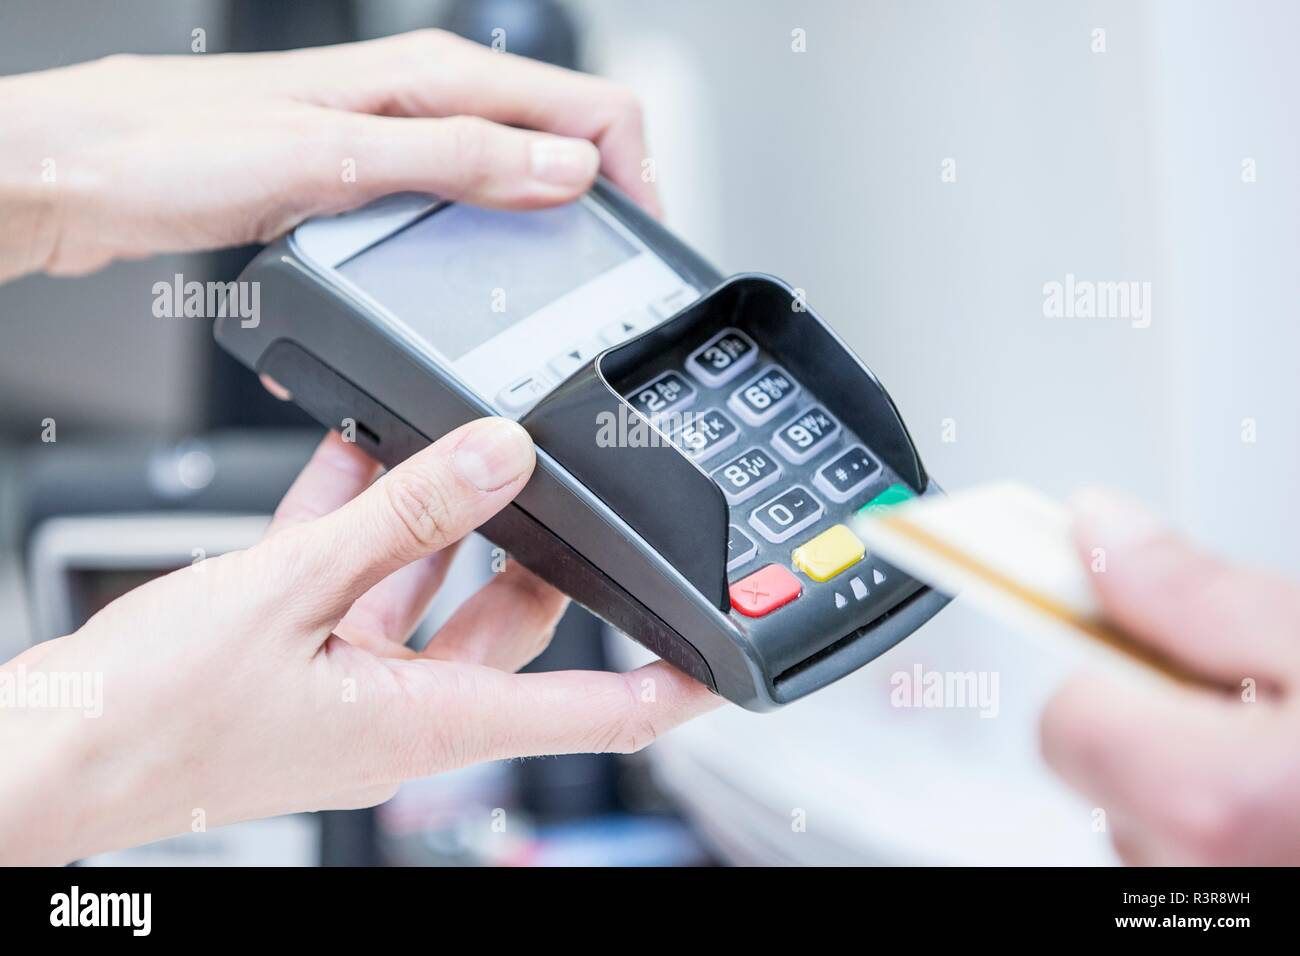 Customer paying by card. - Stock Image